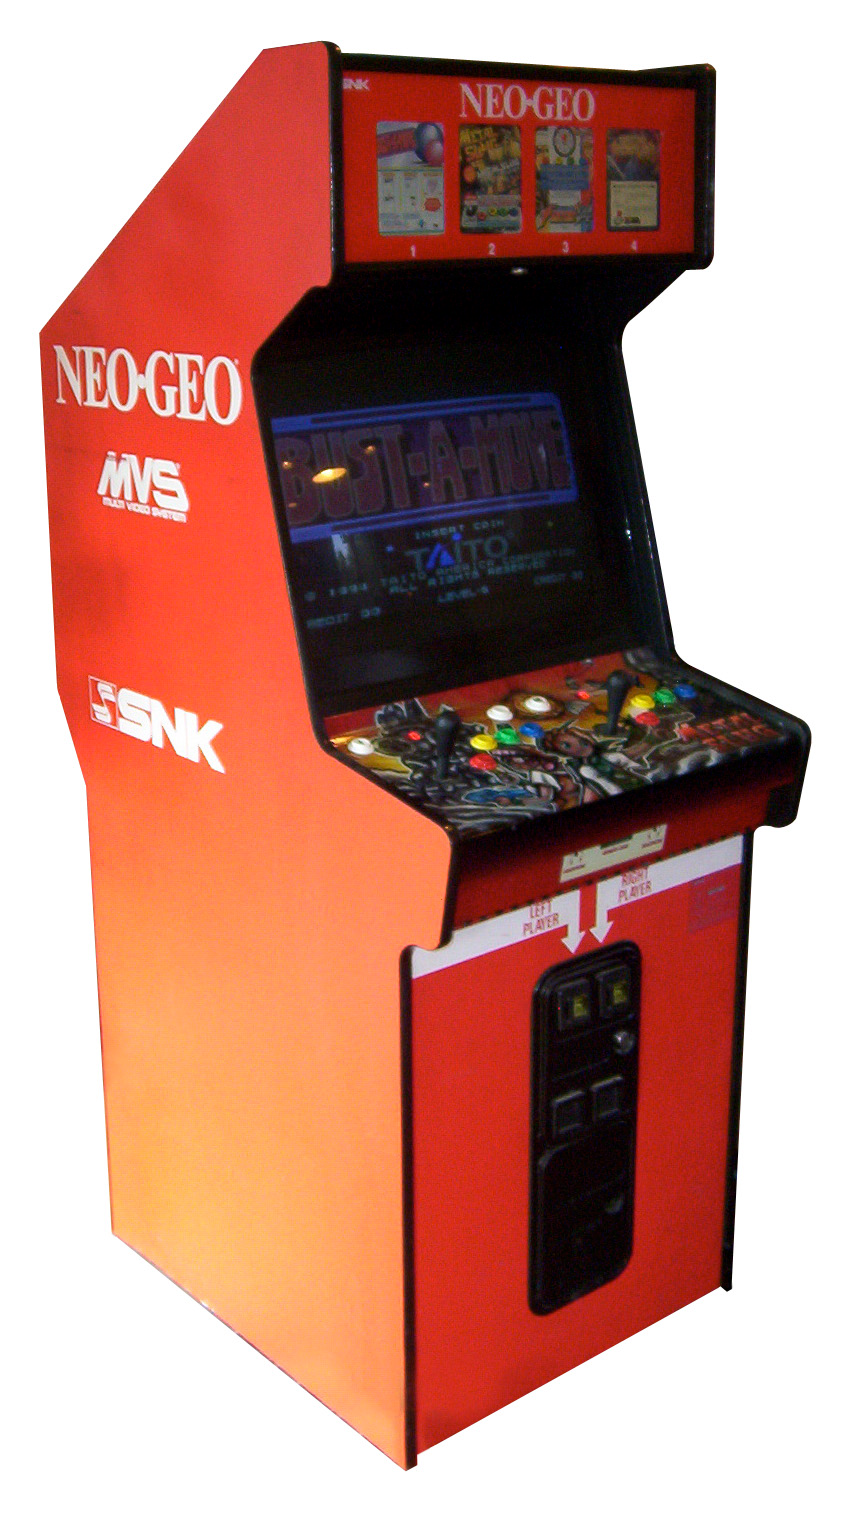 File:Neo Geo full on.png.